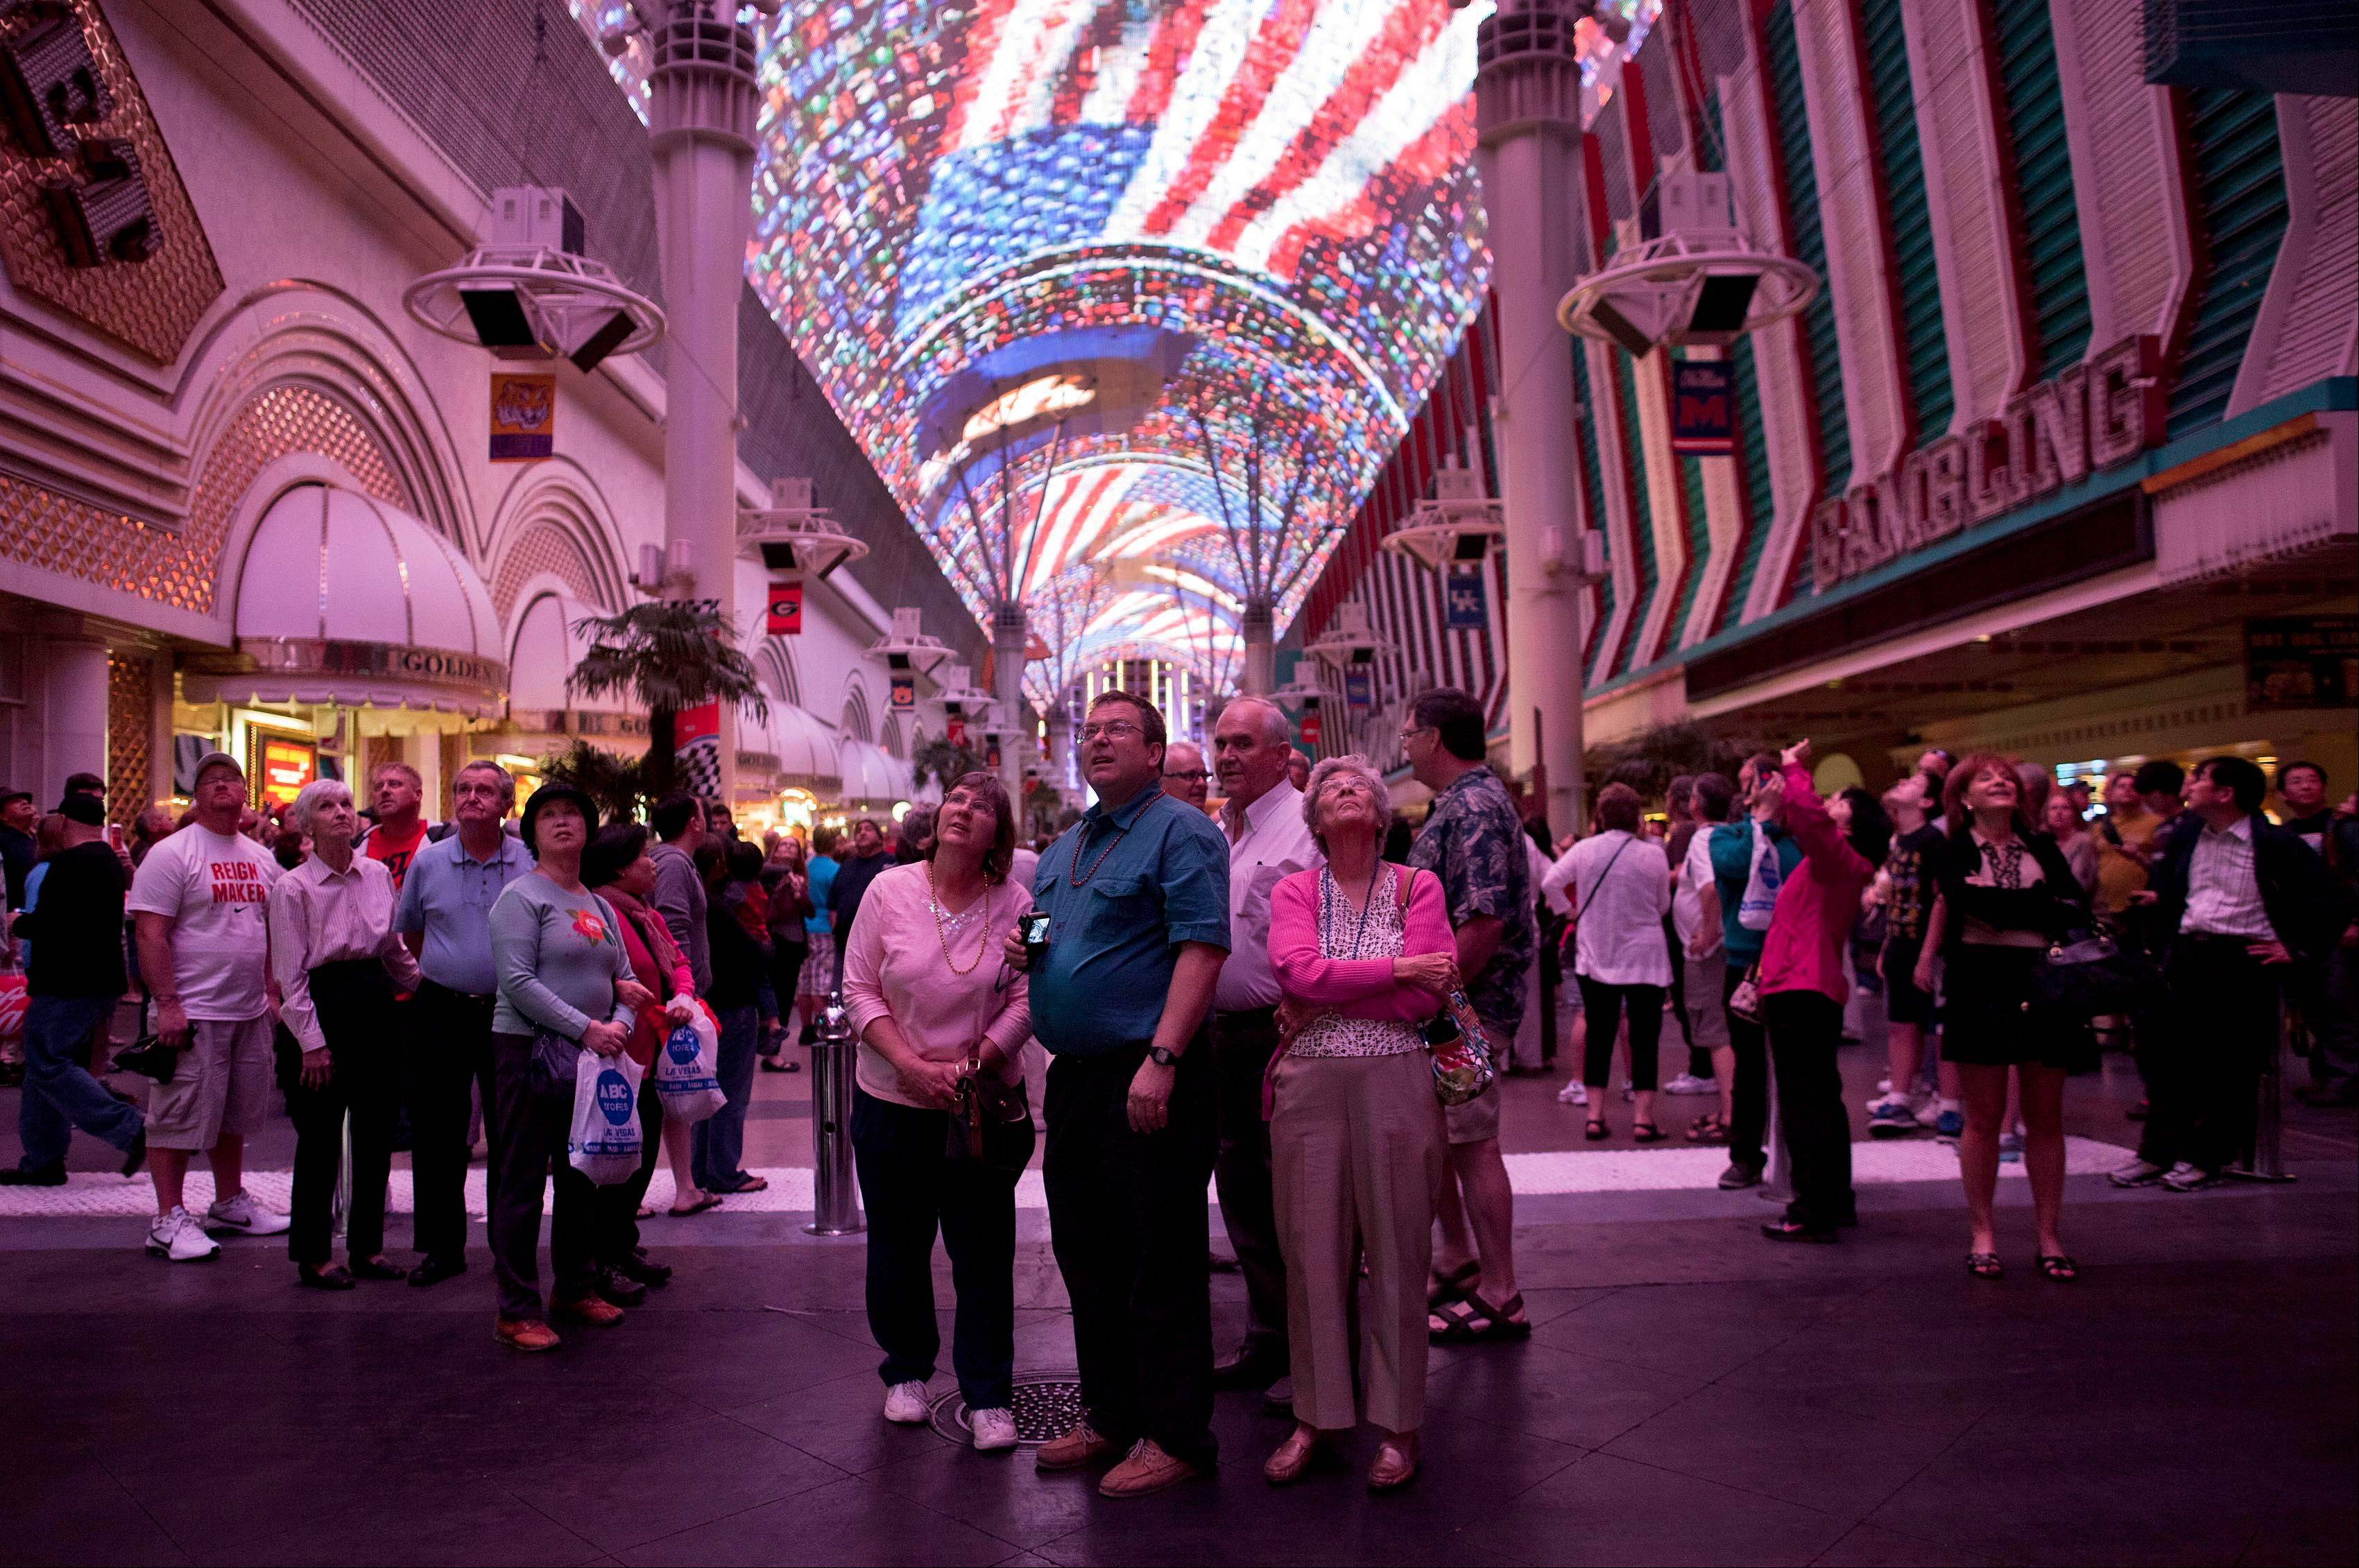 Tourists stop to watch the canopy light show at the Fremont Street Experience in Las Vegas. D